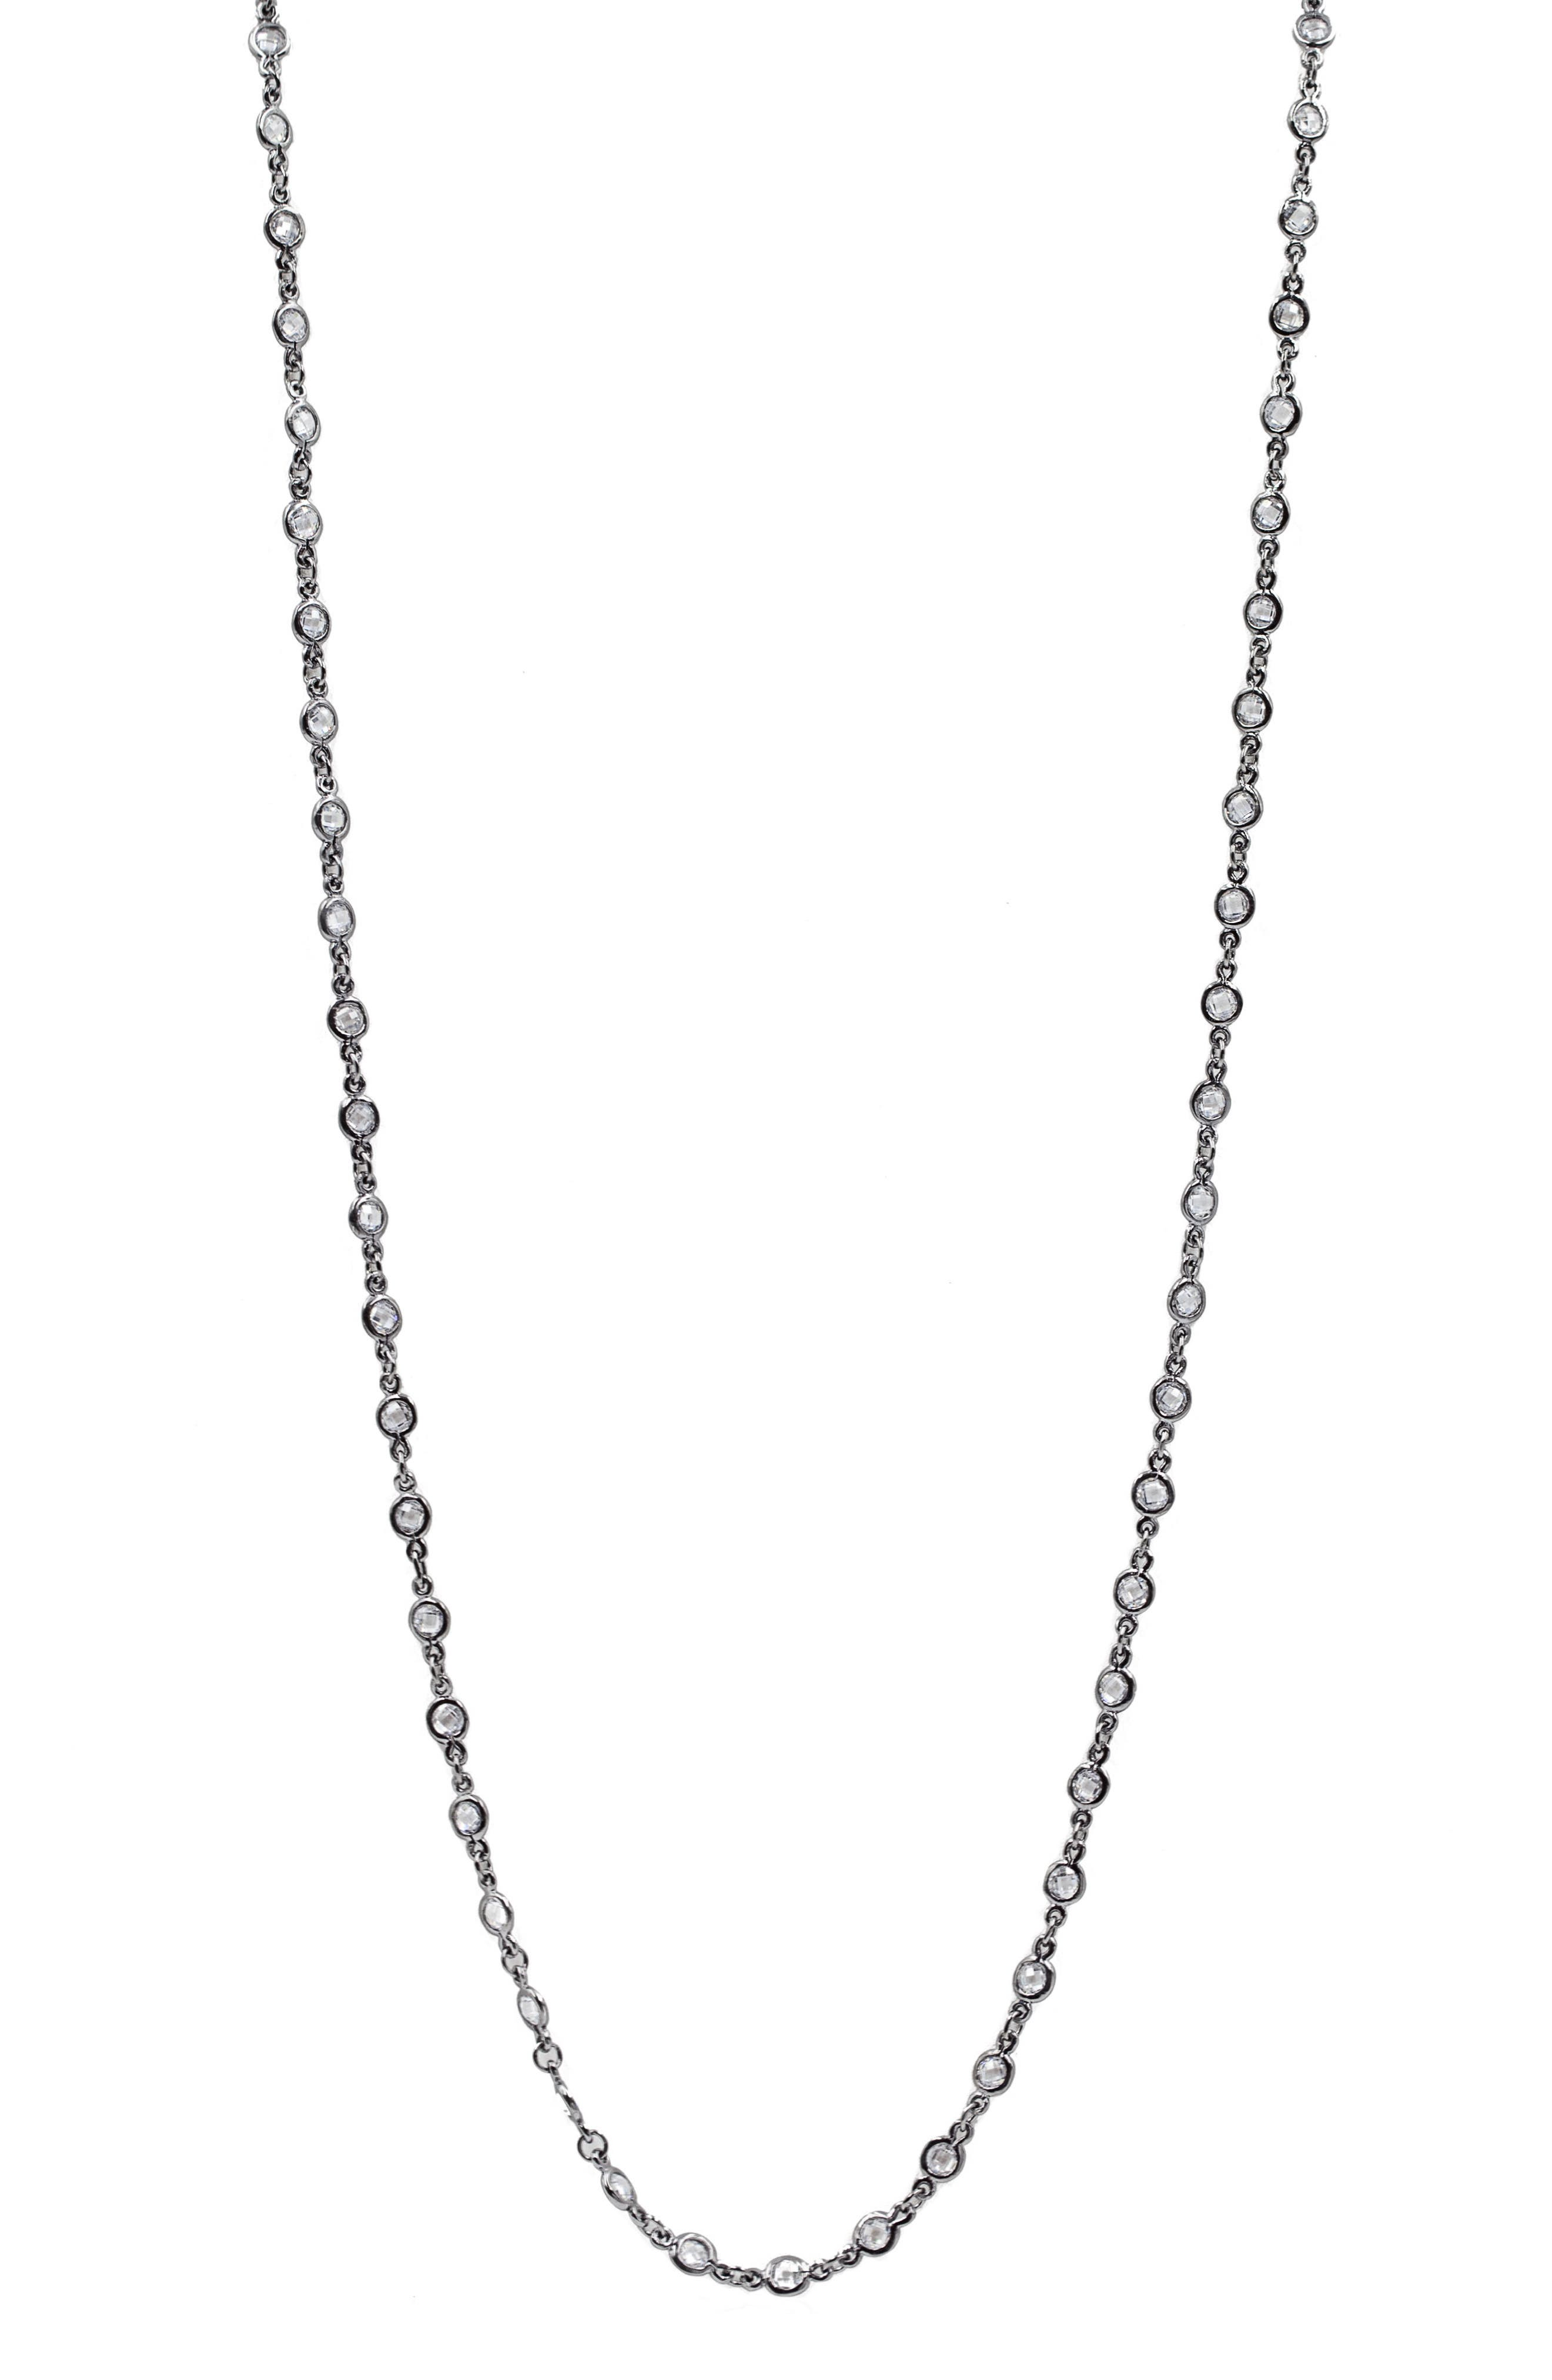 Signature Radiance Necklace,                             Alternate thumbnail 2, color,                             001